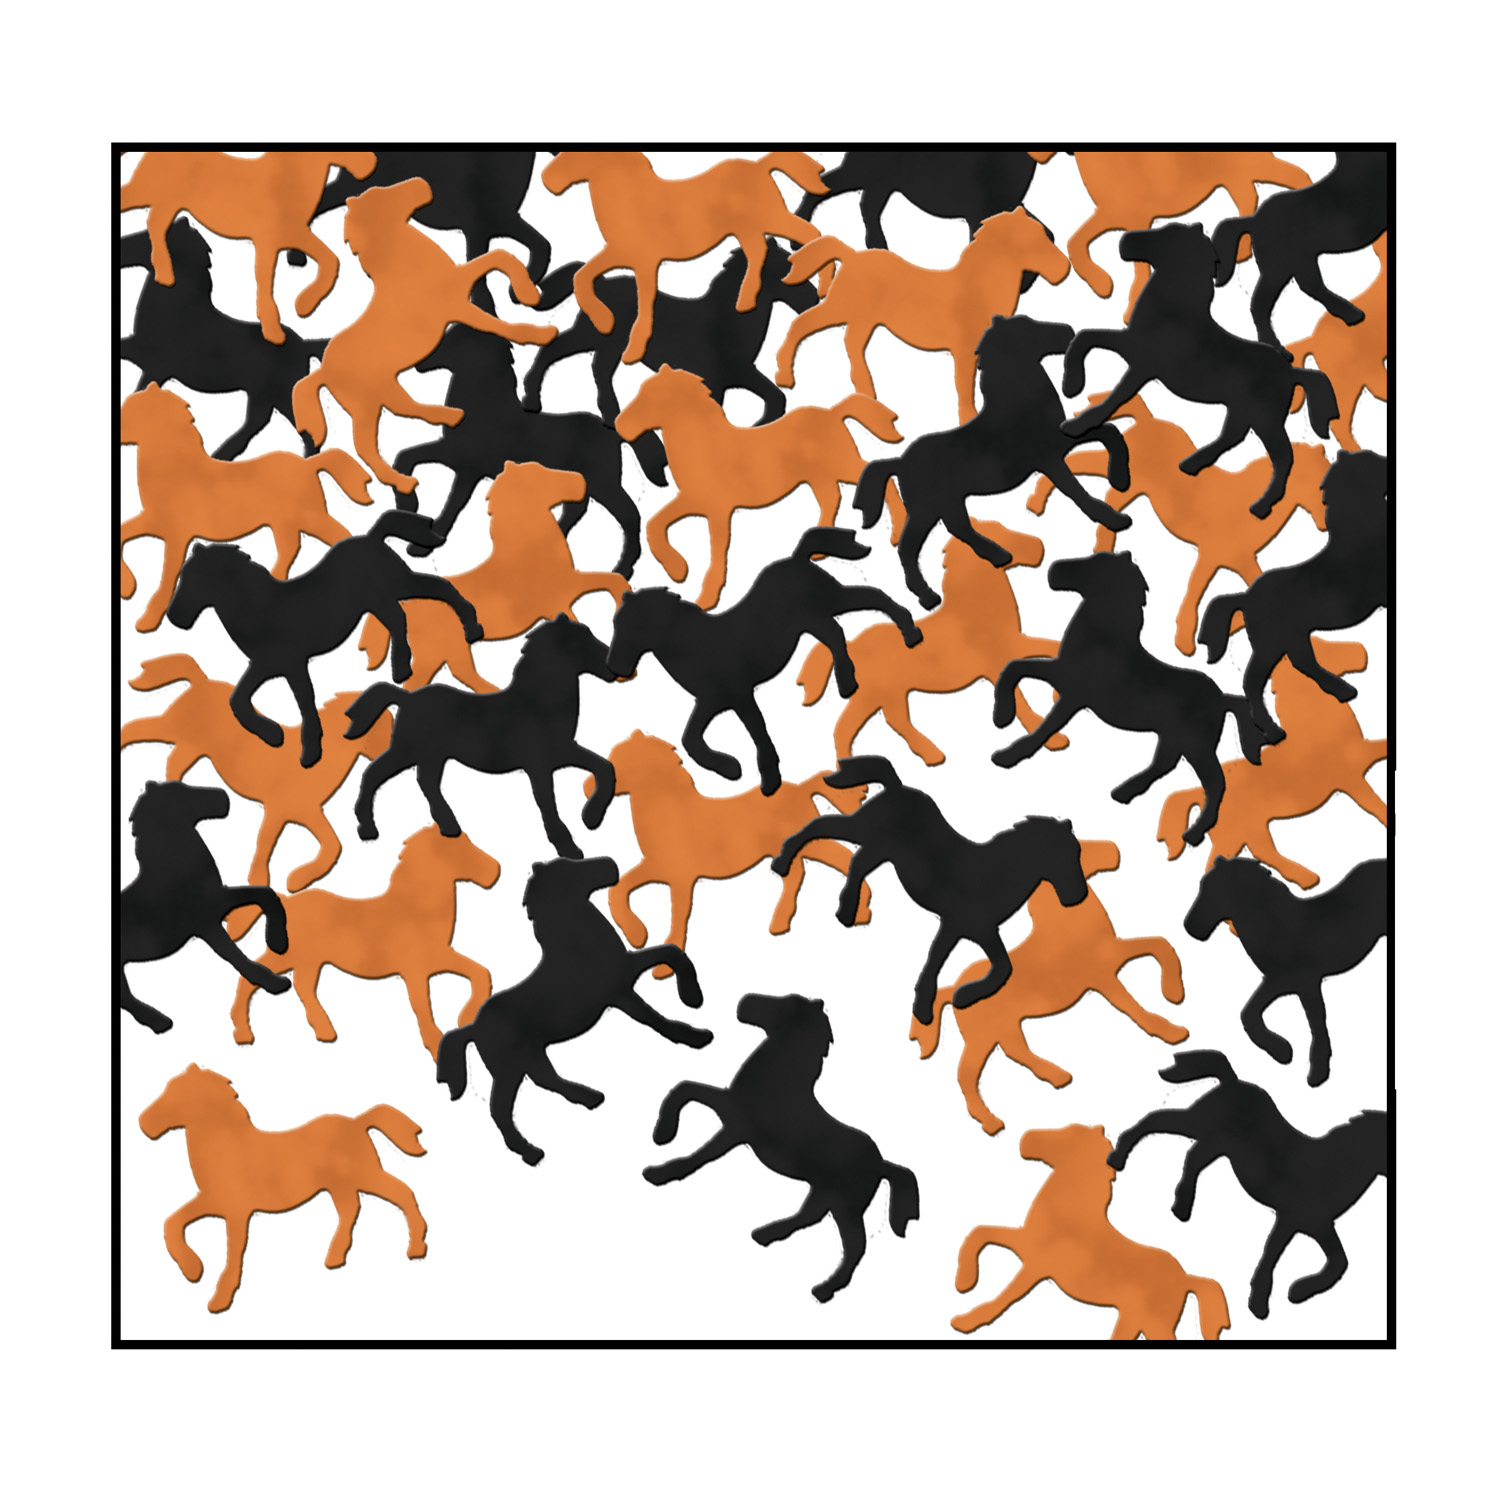 Fanci-Fetti Horses (Pack of 12) Black and Copper Confetti, Horse Confetti, Fanci-Fetti Horses, Derby Day decorations, Sports Decor, Inexpensive Confetti, Wholesale party decorations